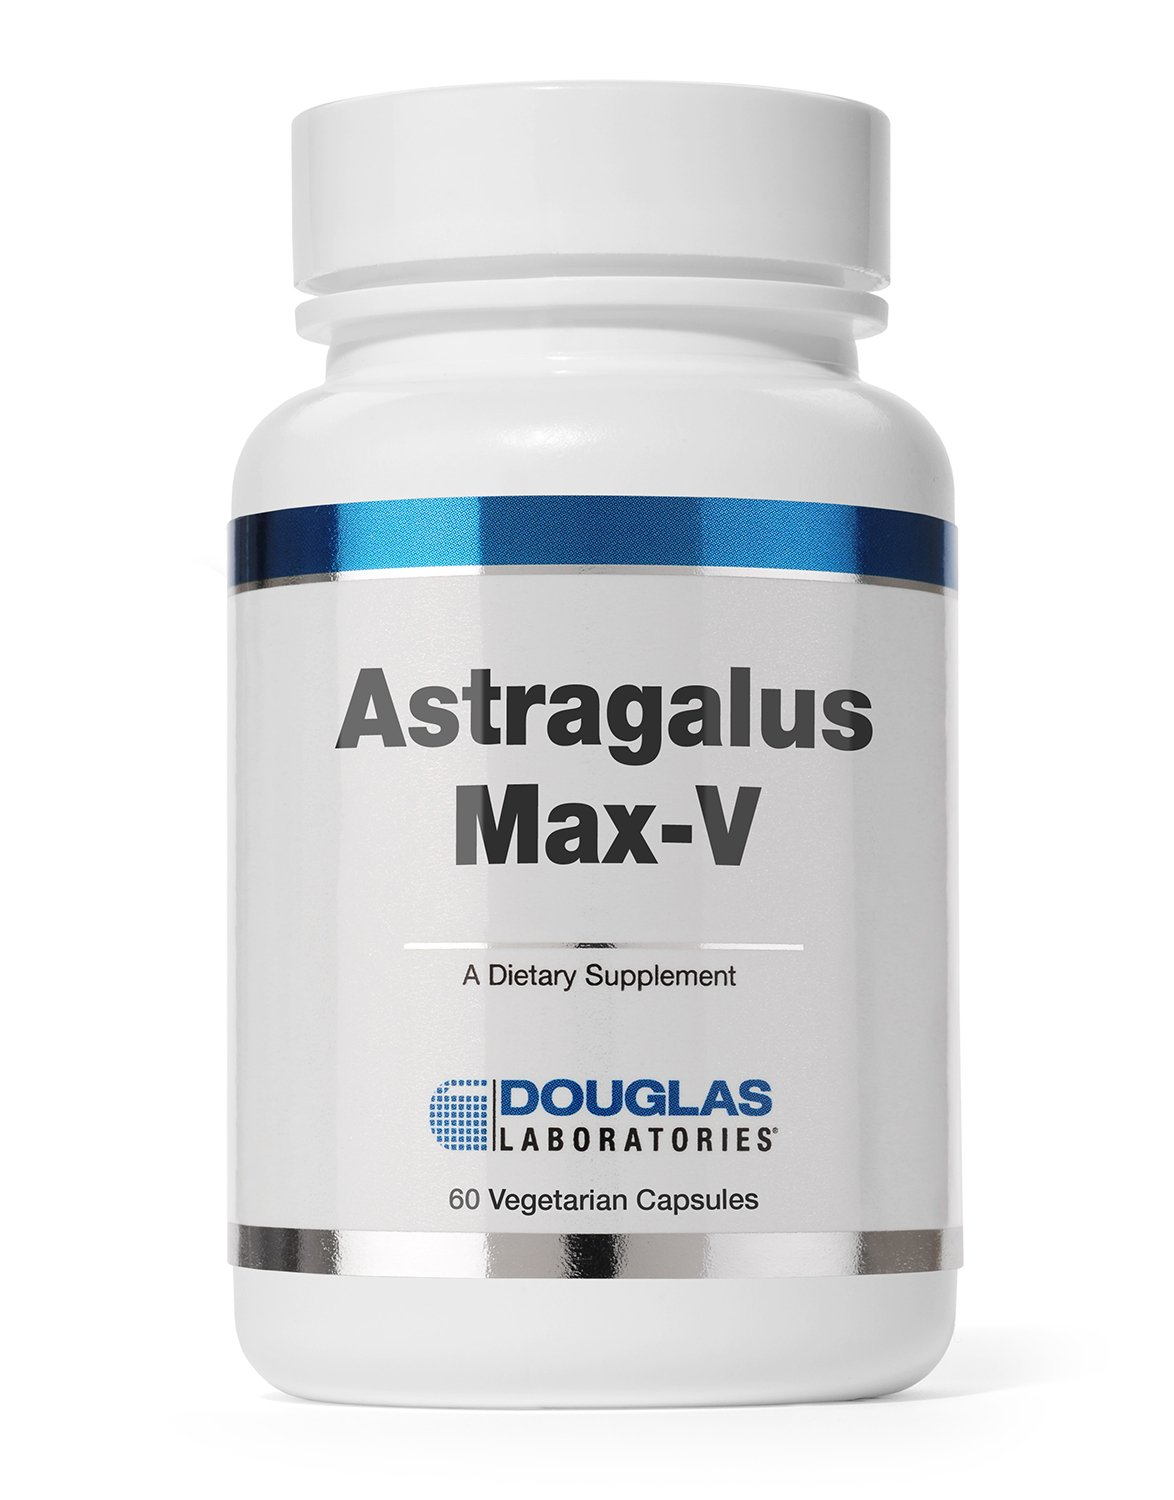 Douglas Laboratories – Astragalus Max-V – Standardized Astragalus to Provide Immune Support – 60 Capsules